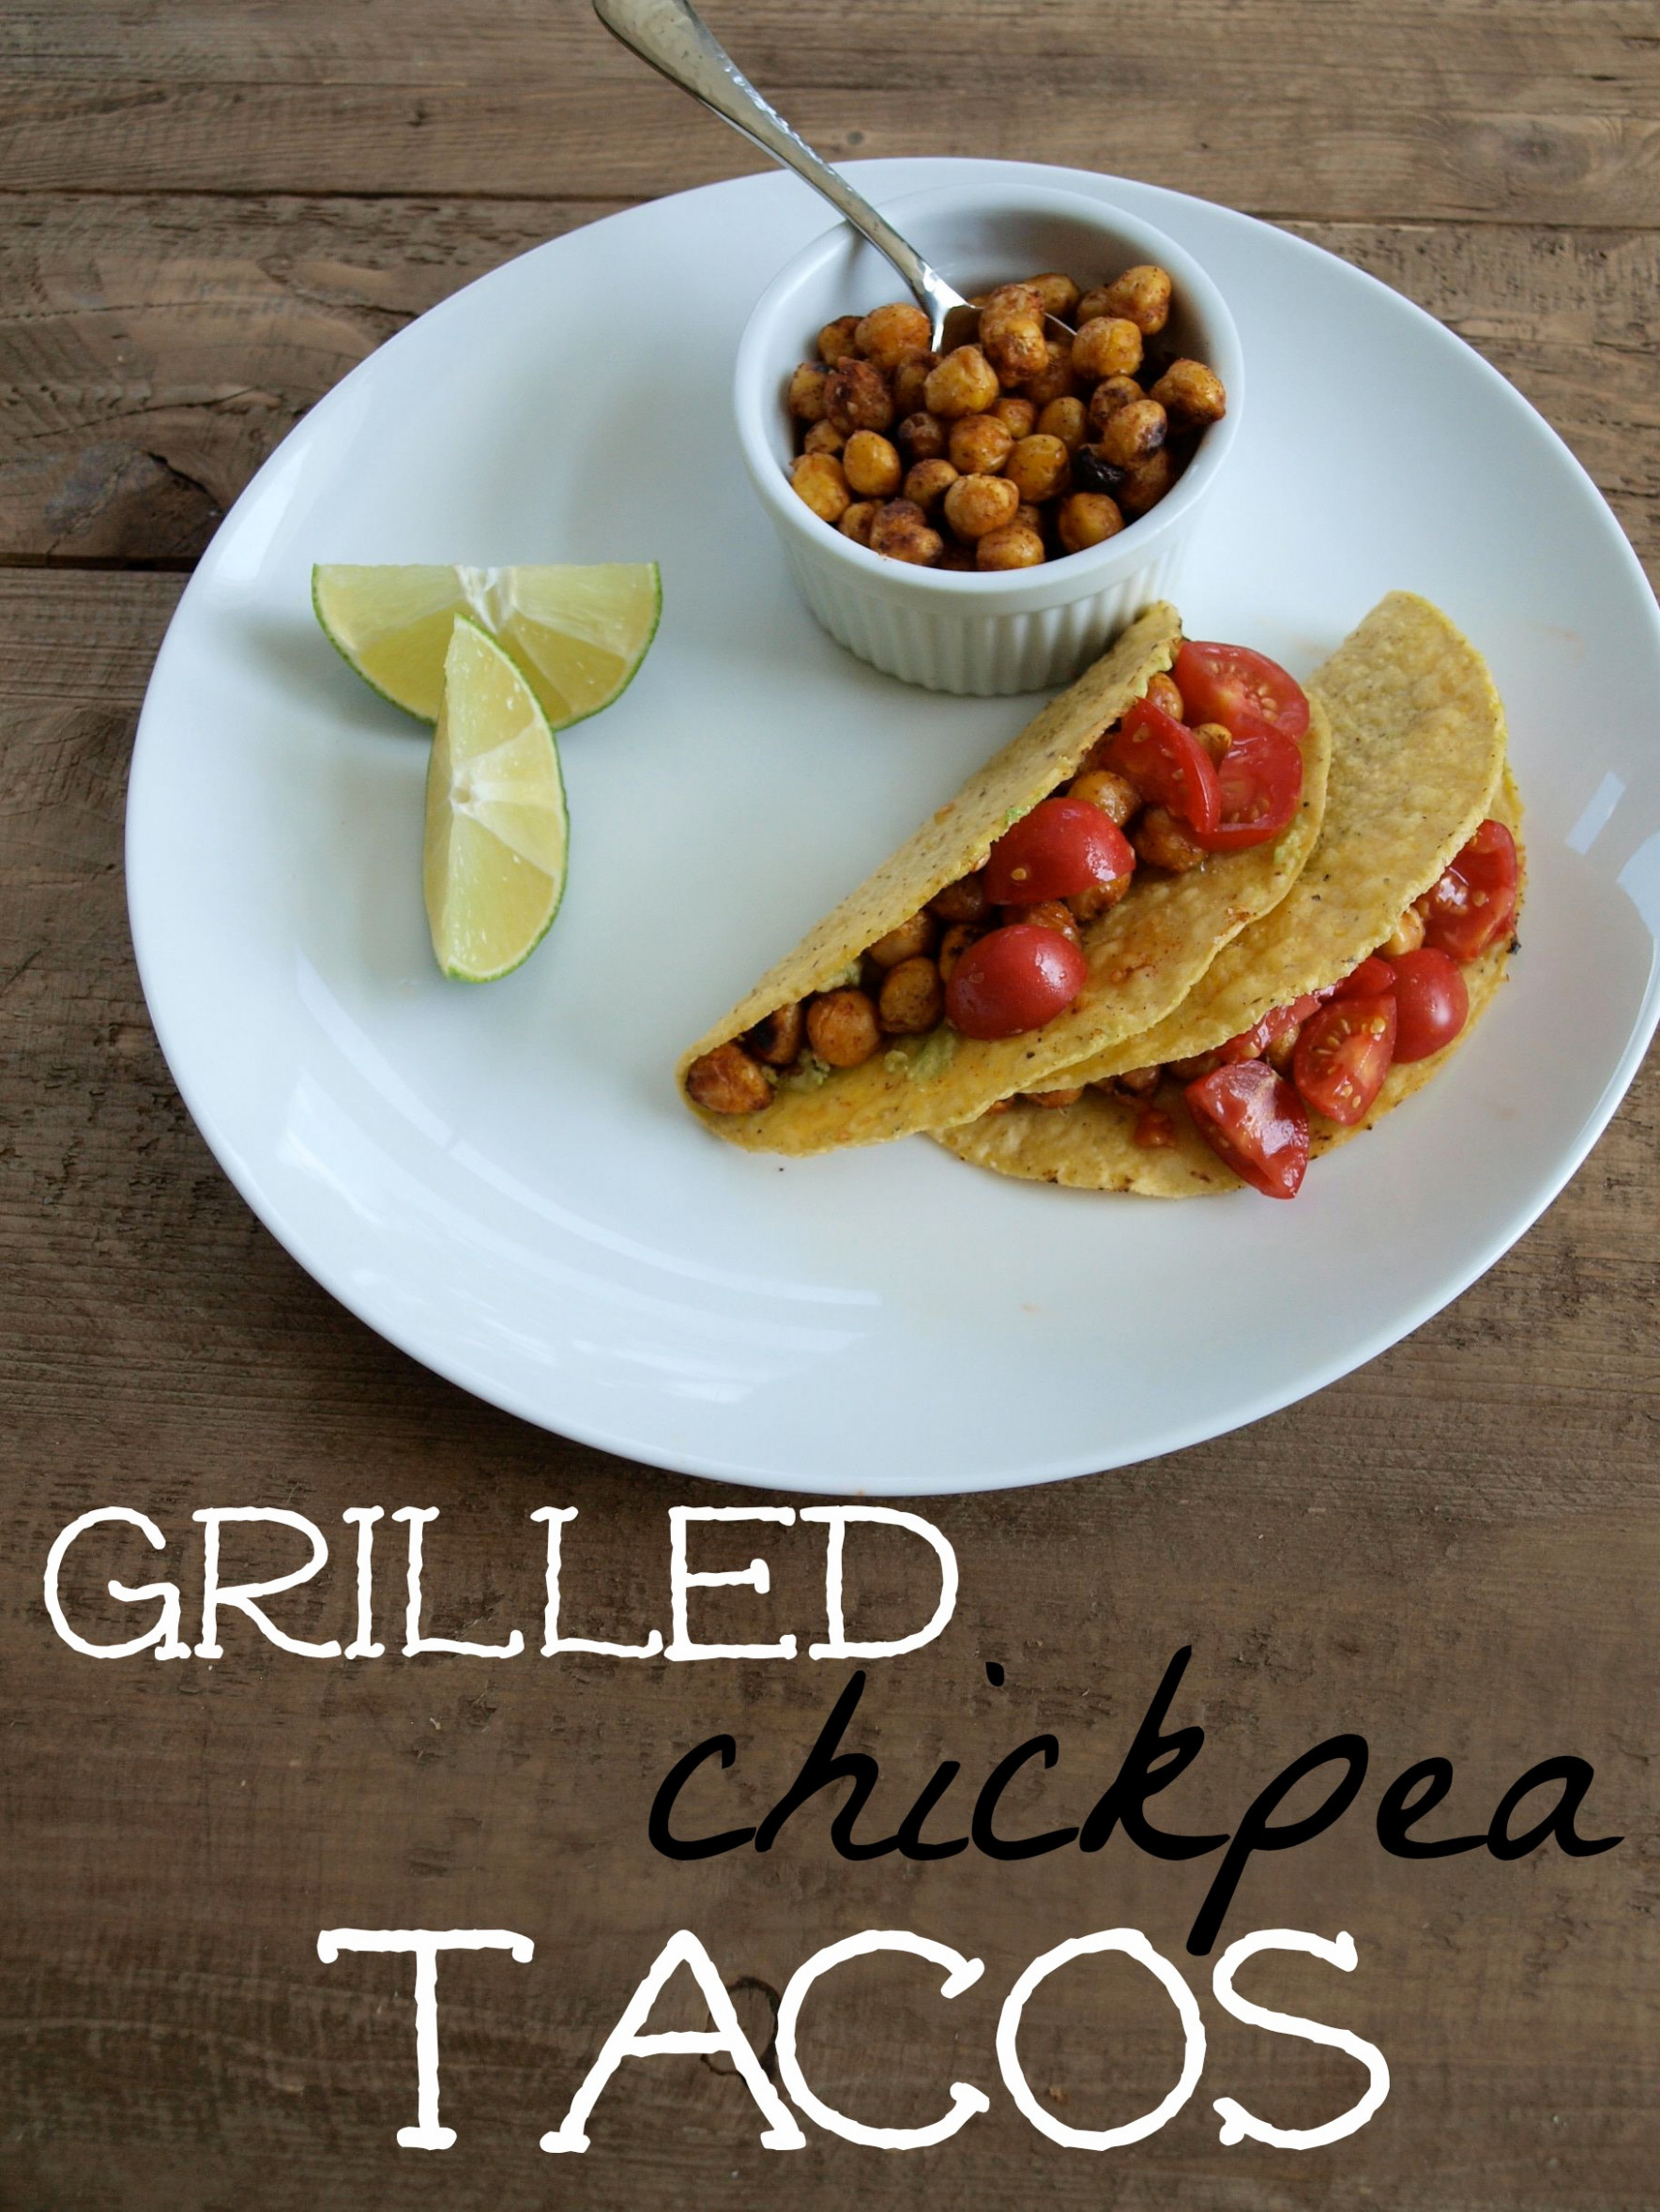 15 minute grilled chickpea tacos - Happy Healthy Mama - vegetarian recipes on the grill